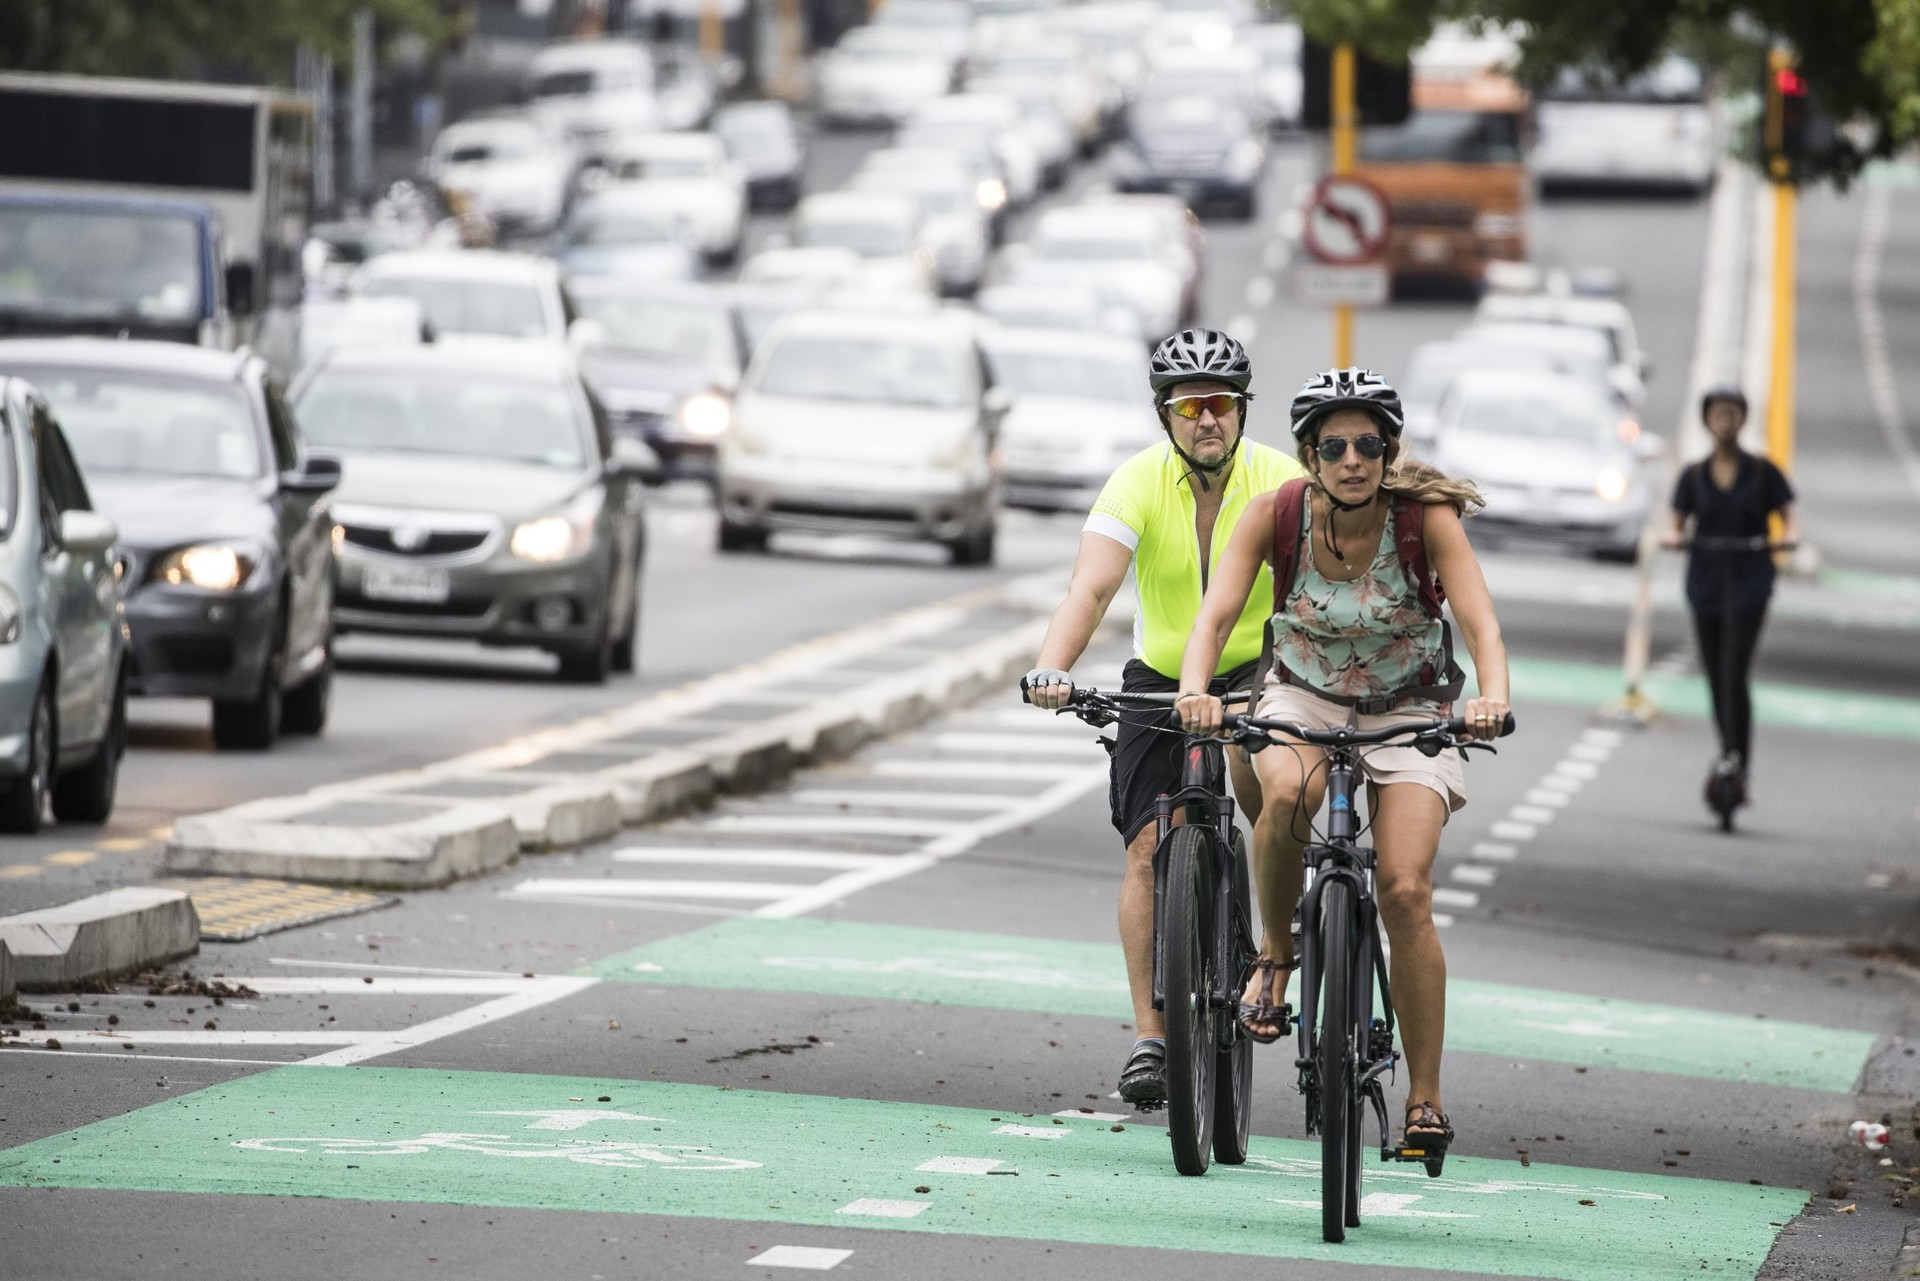 Bikelash: Researchers examine what drives opposition to cycle lanes